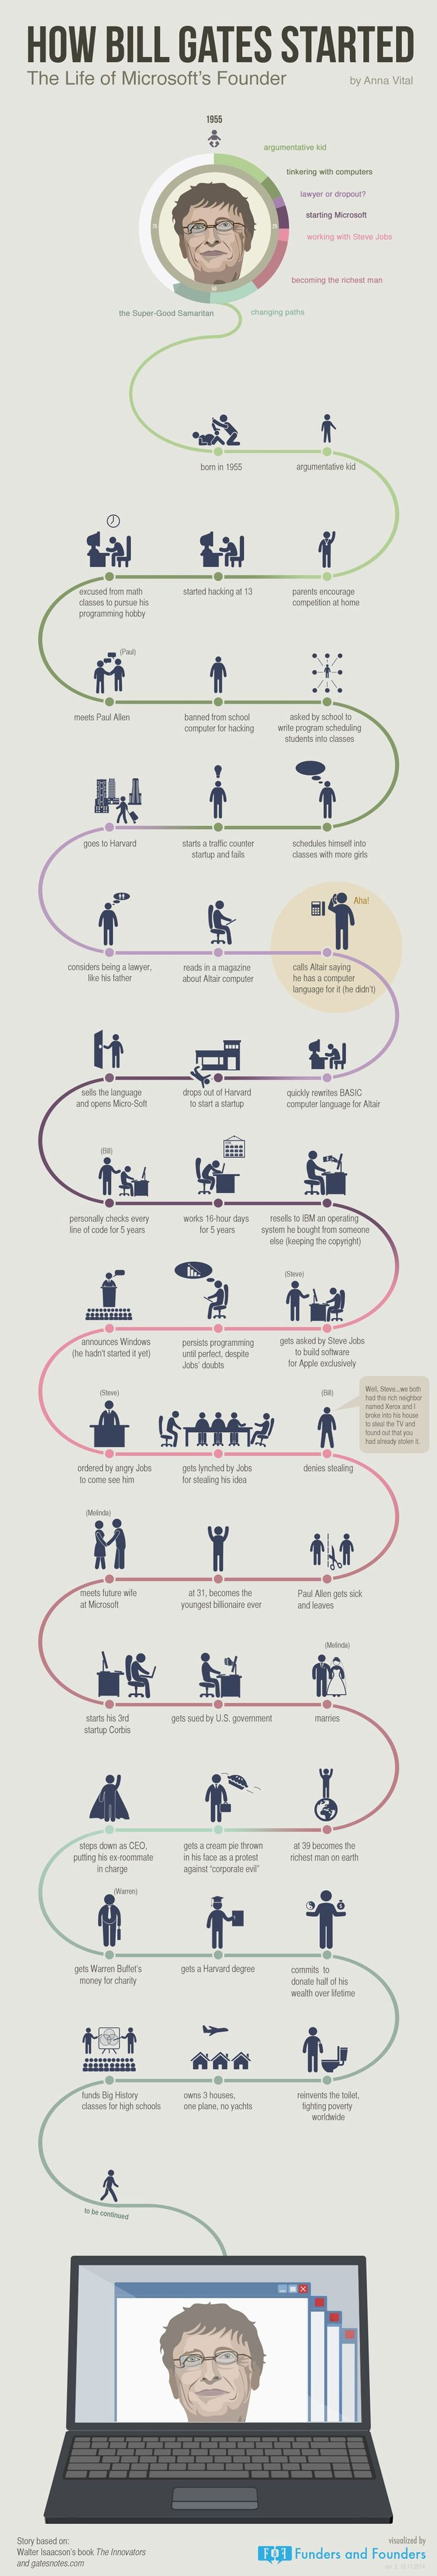 Bill Gates startup life path visualized in an infographic. You will see how he learned to create and think like a genius.